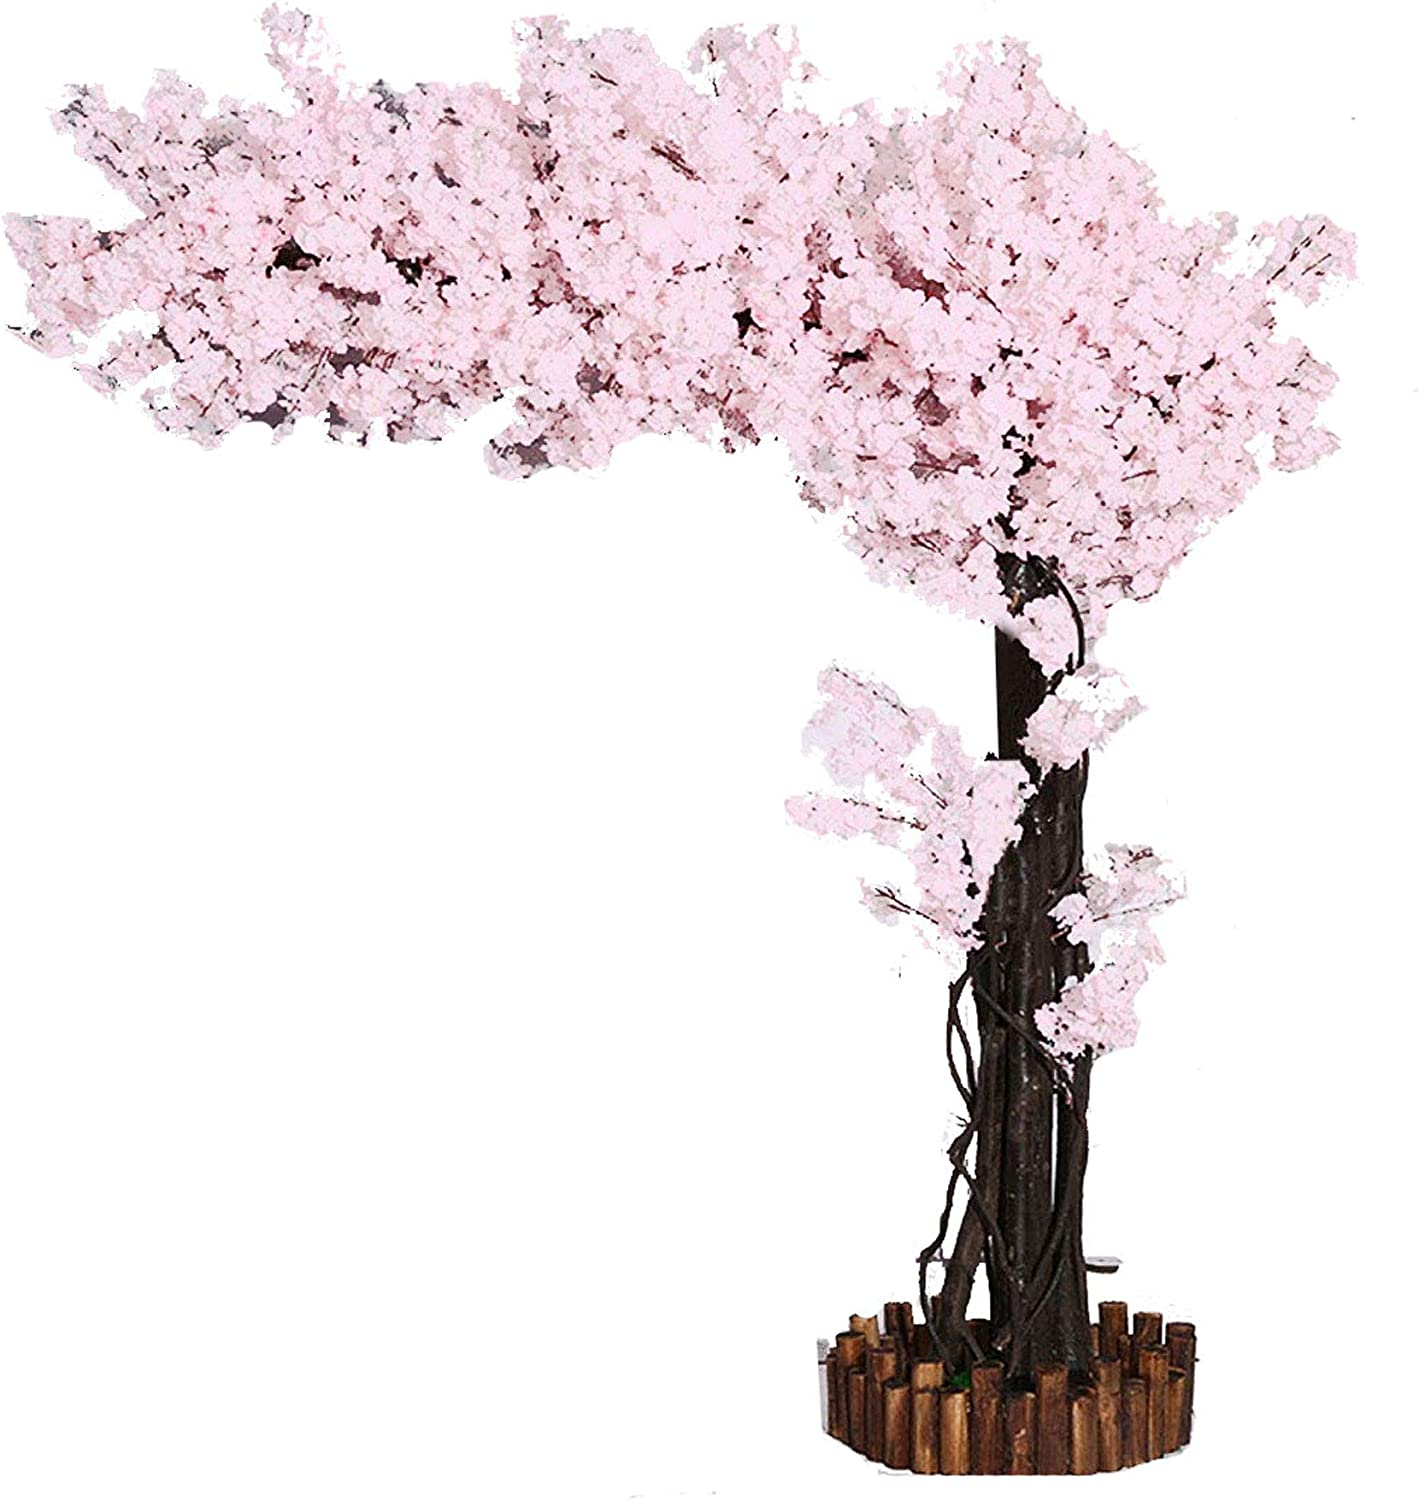 Amazon Com Artificial Cherry Blossom Trees Pure White Cherry Blossom Tree Arch Pink Fake Sakura Flowers Indoor Outdoor Home Office Party 7ft Tall 5 5ft Width Kitchen Dining